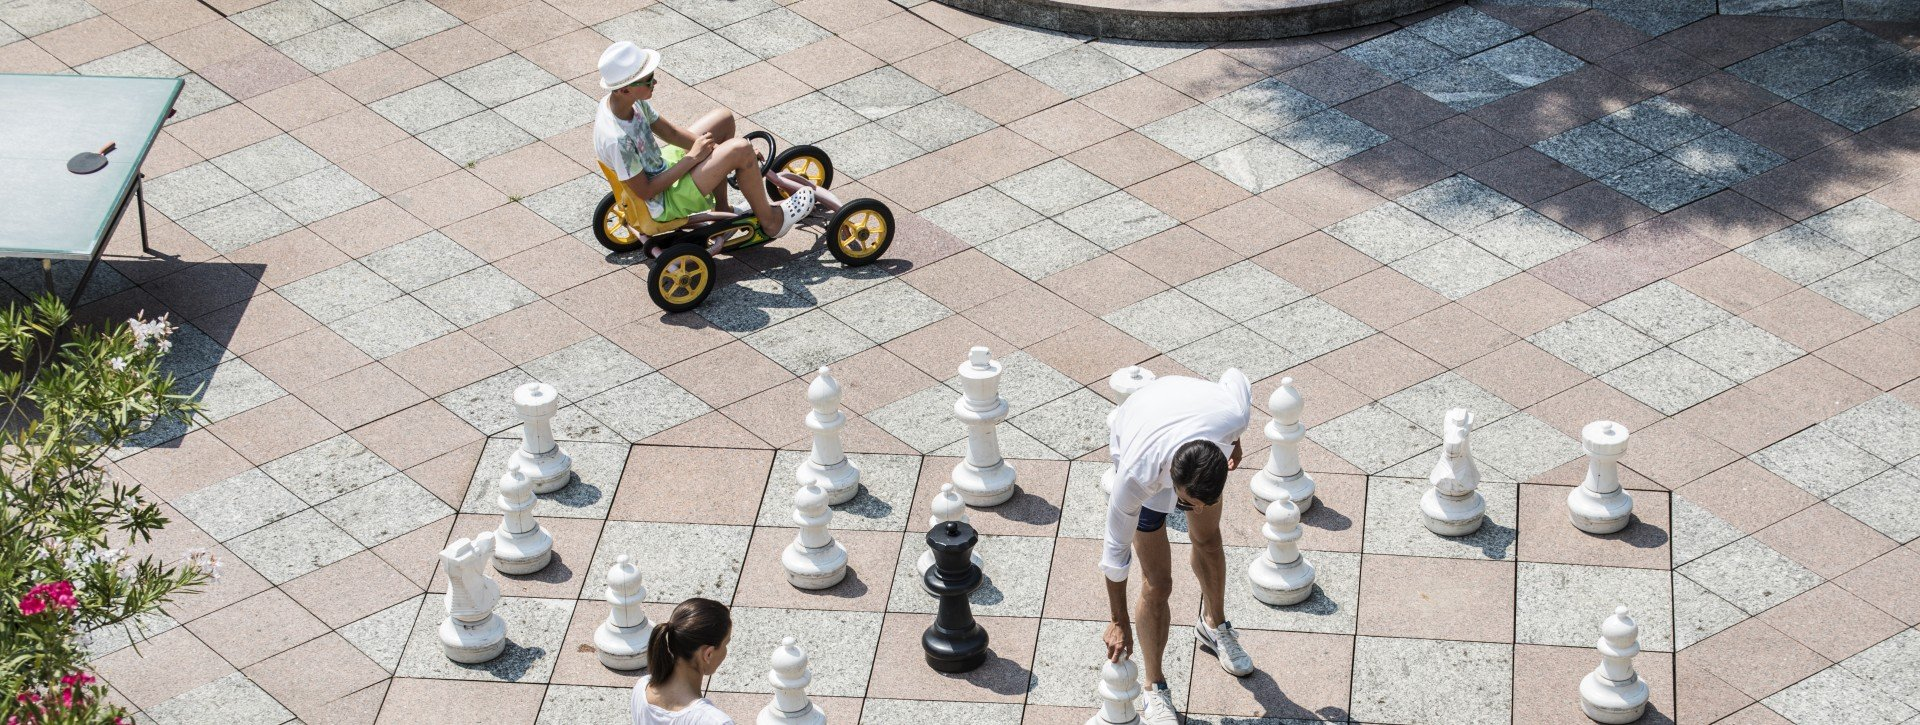 Street chess at International au Lac Historic Lakeside Hotel